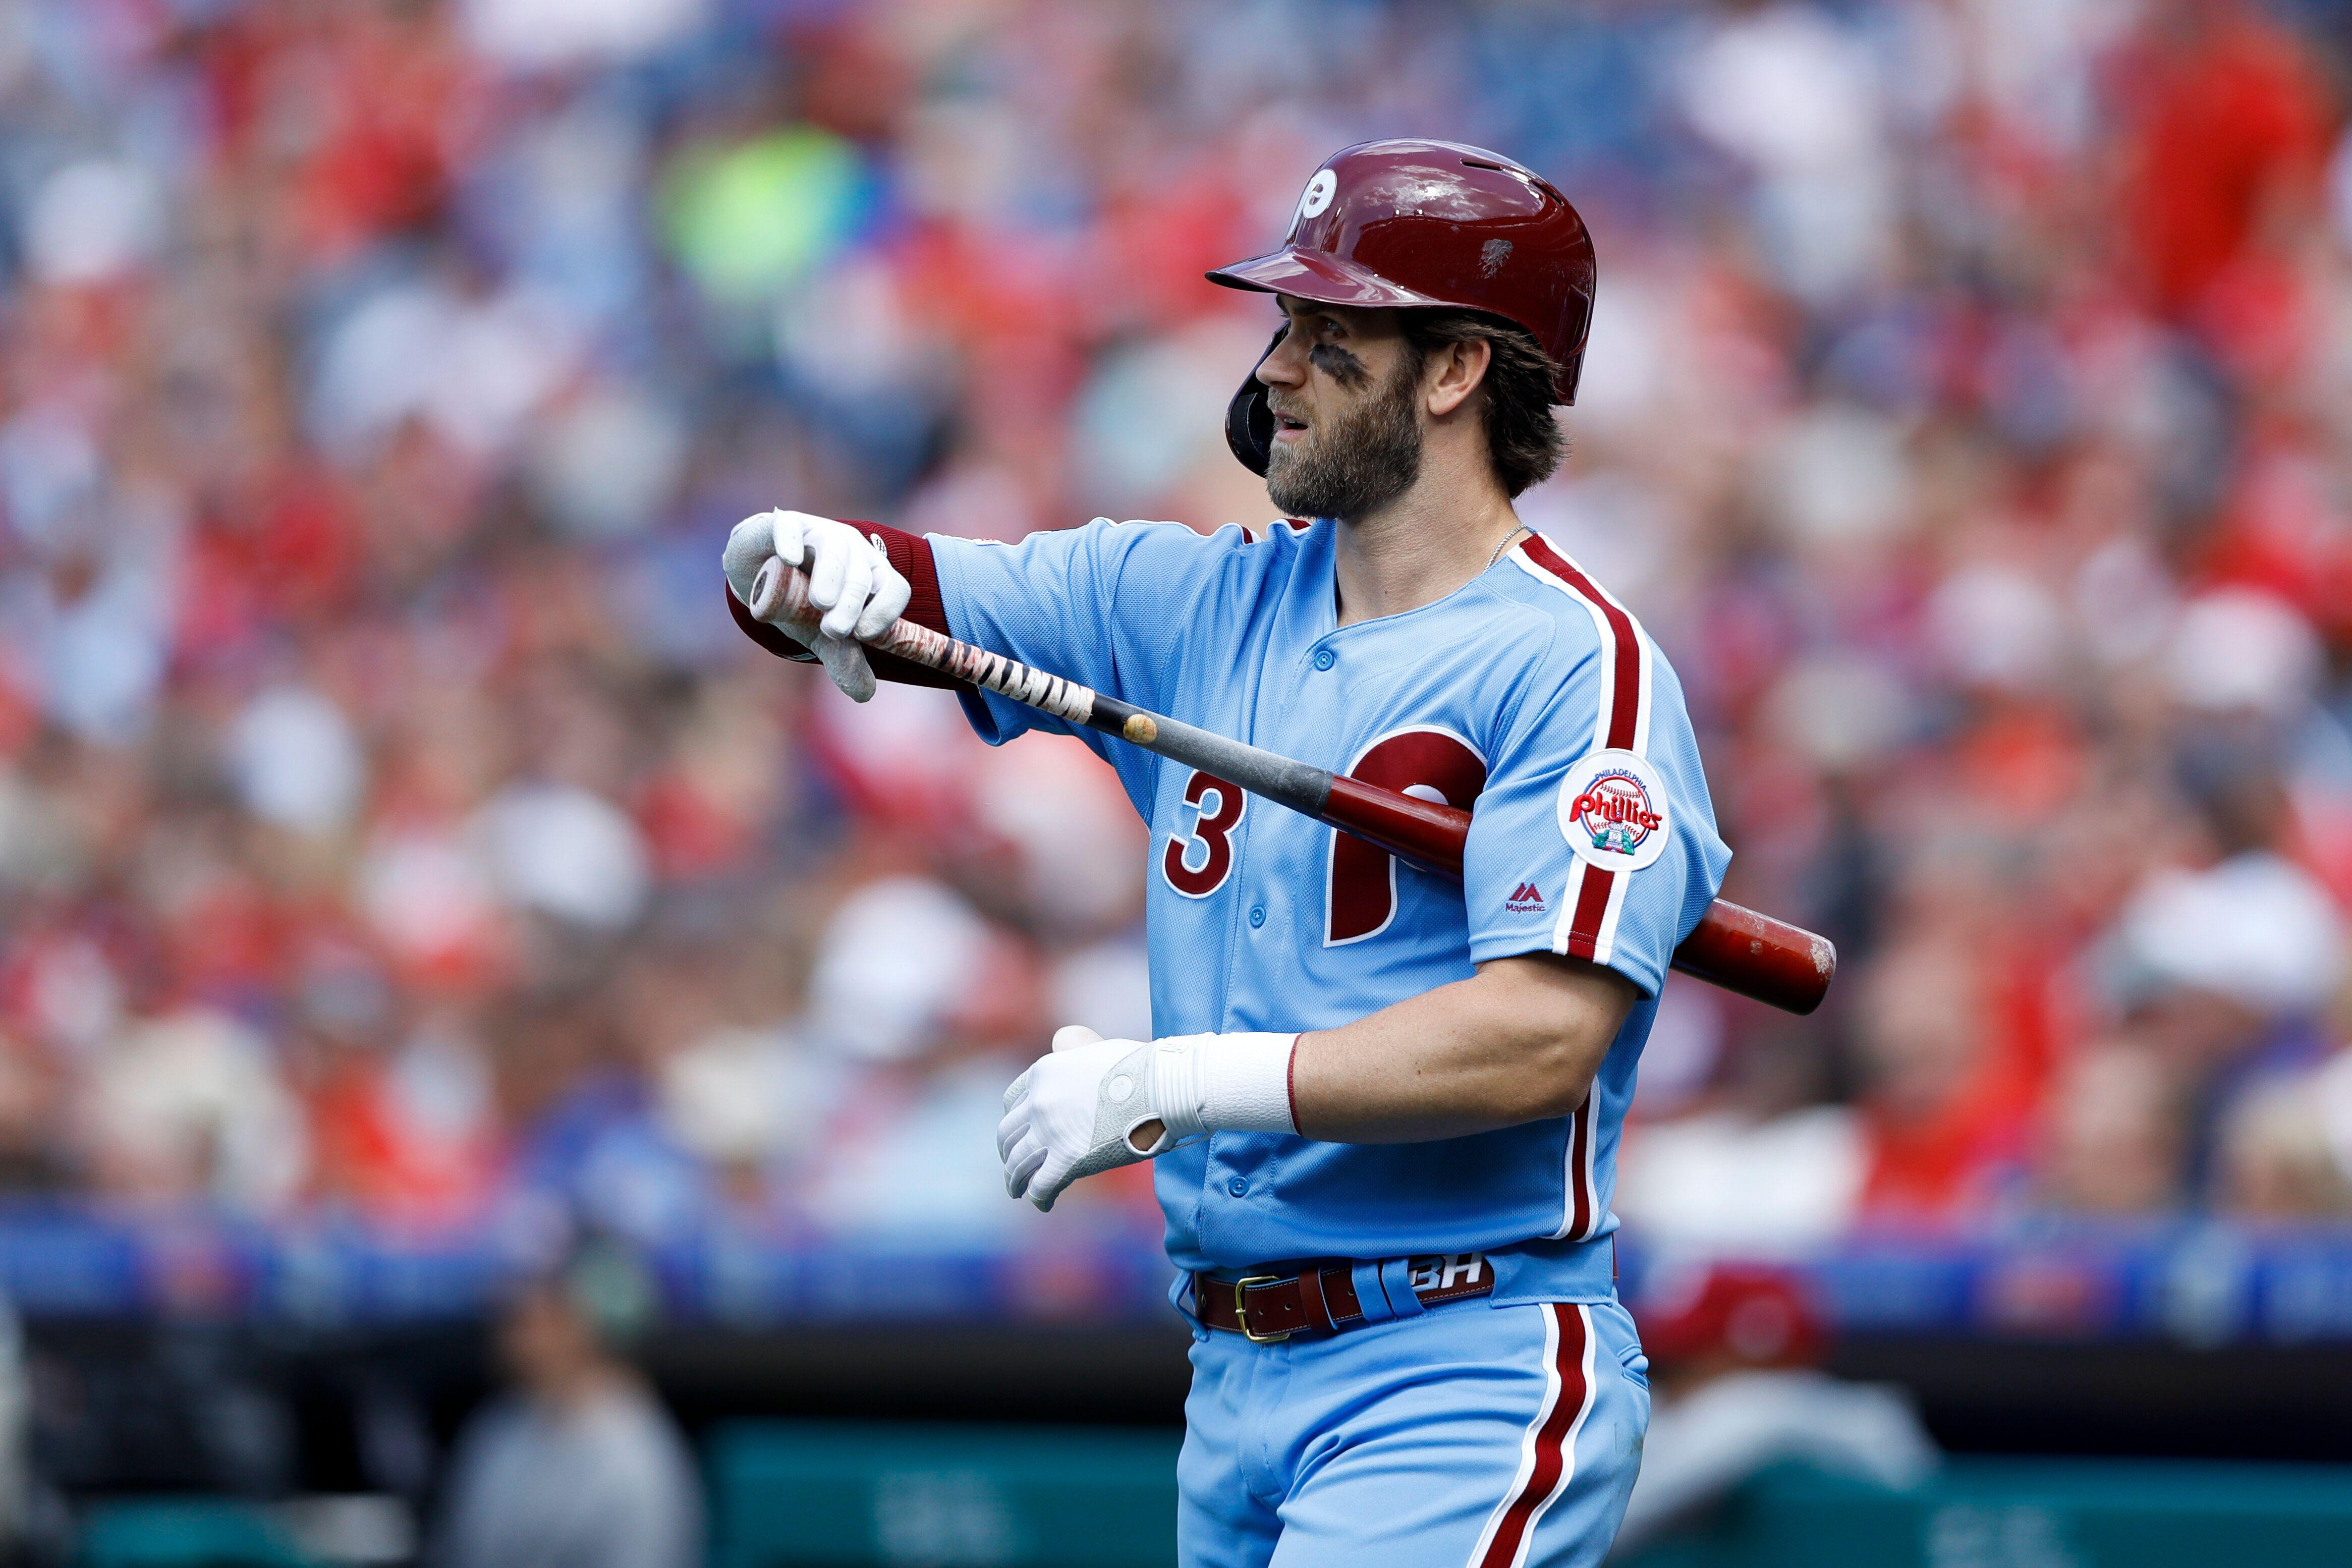 Phillies manager Gabe Kapler says team understood that Bryce Harper comes with history of slumps